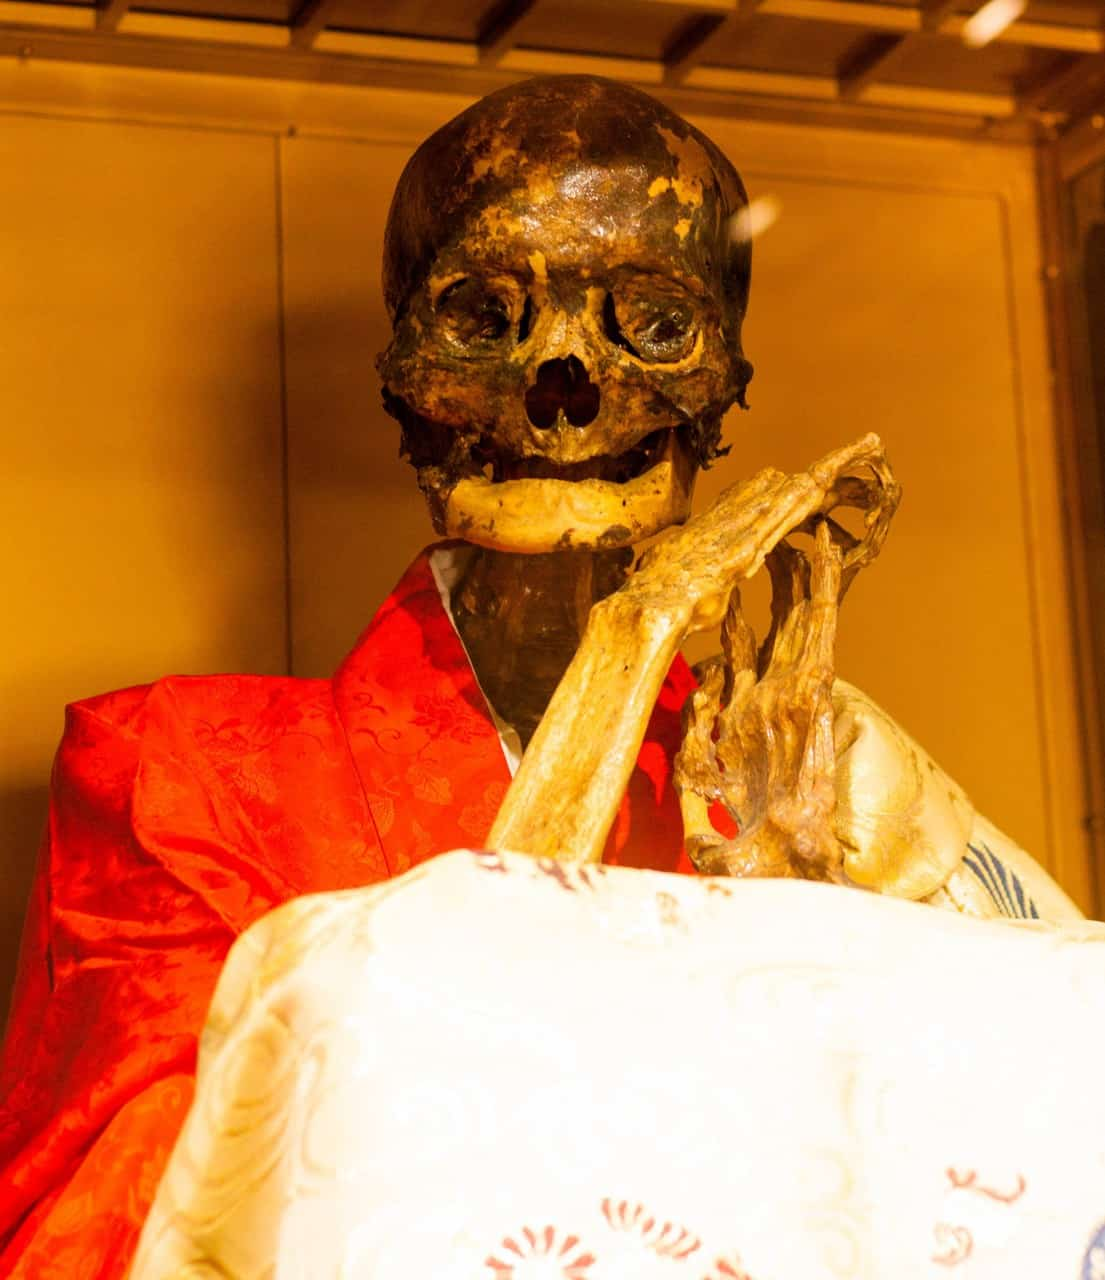 Sokushinbutsu refers to the practice of self-mummification that was followed by a mountainous dwelling sect of Buddhist monks who were called Shugen-do.